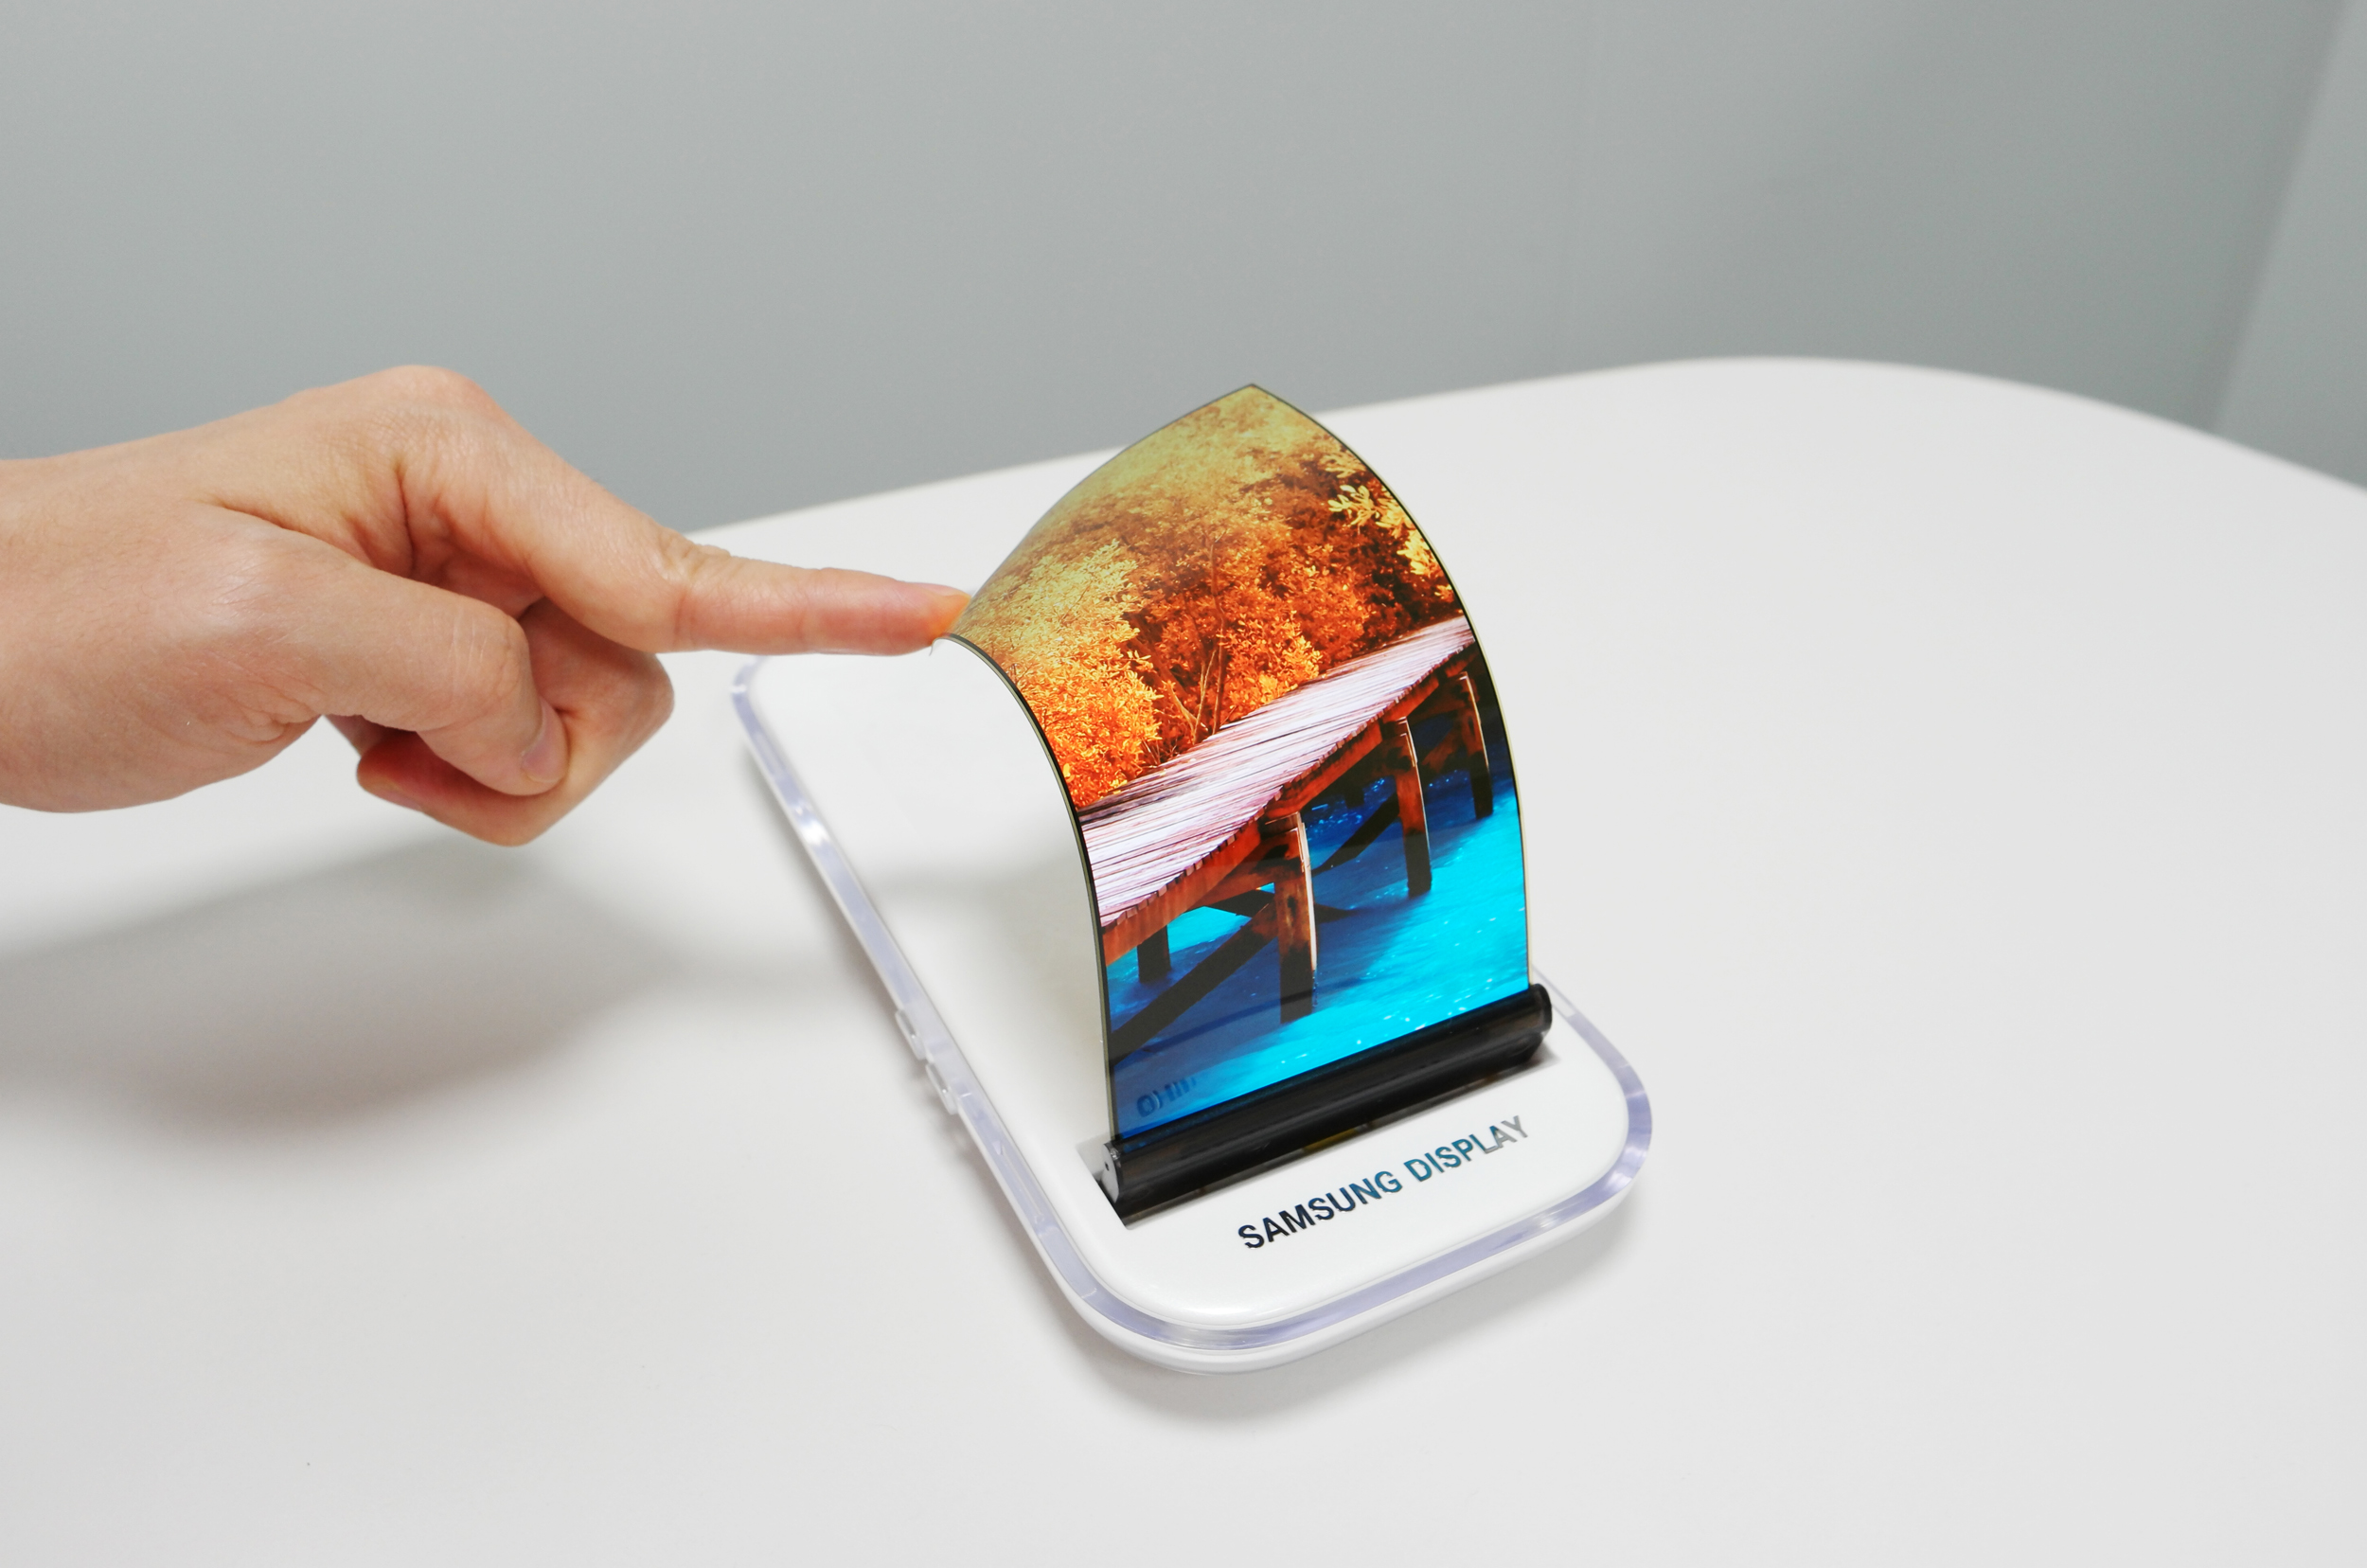 Samsung Display dominates 2020 smartphone panel market with 50 pct share